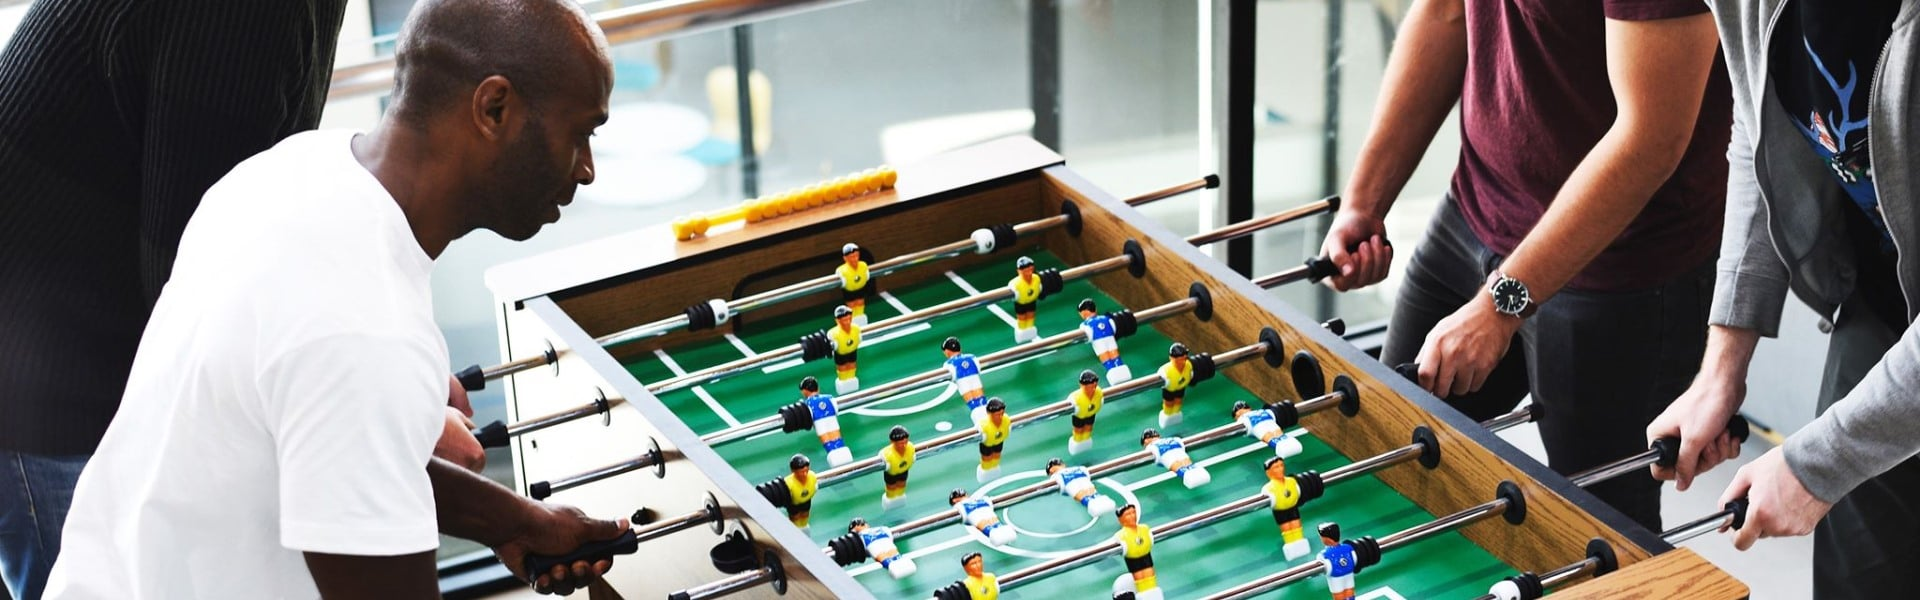 Best Professional Foosball Tables Selection